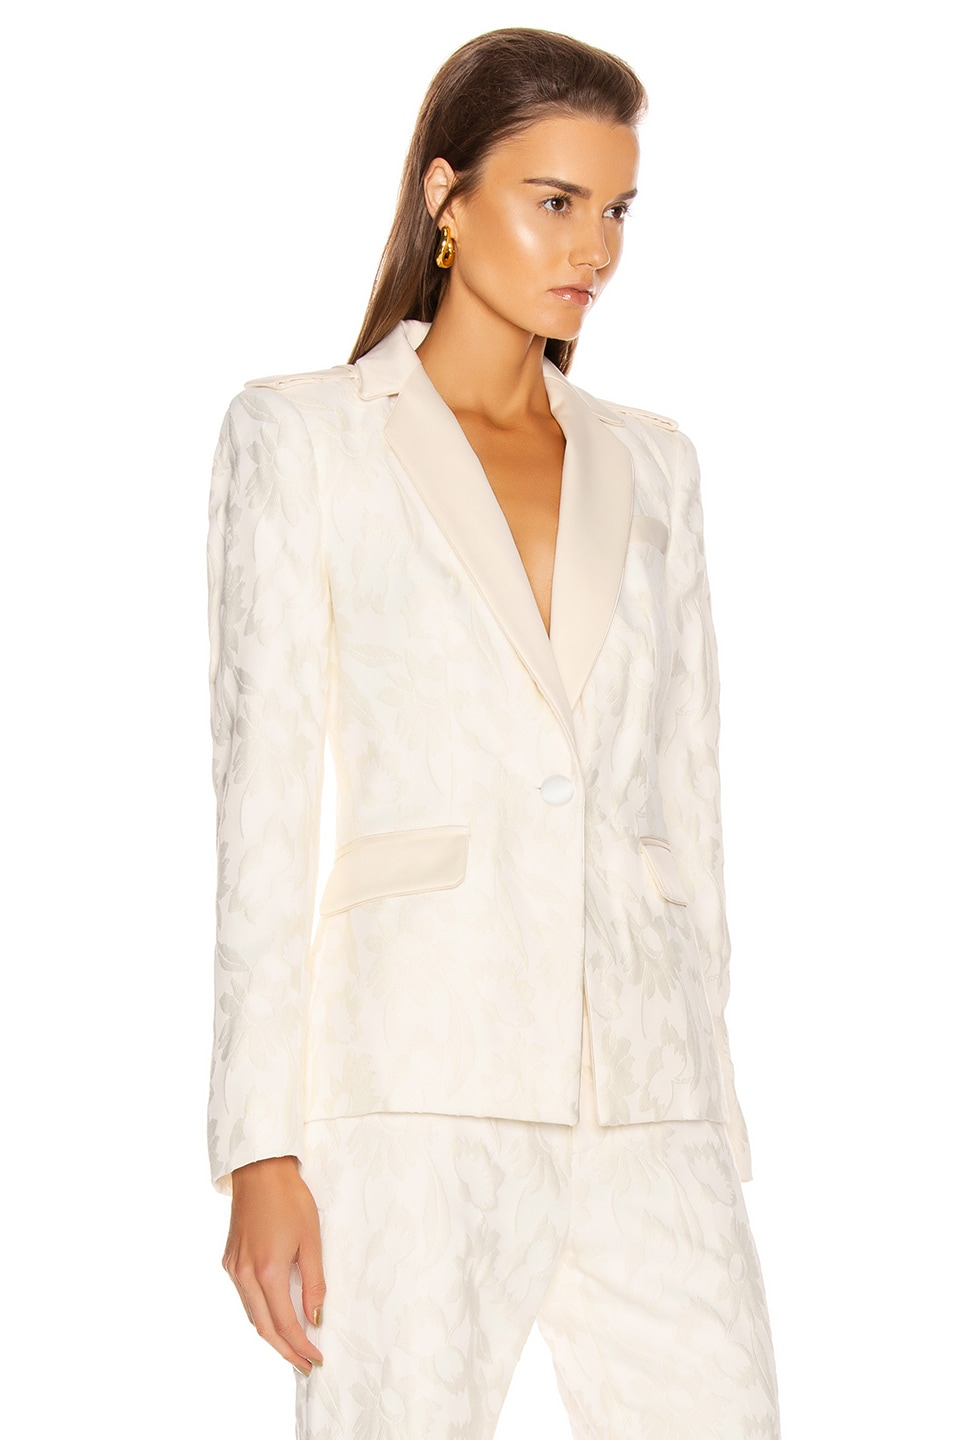 Image 2 of Alexis Claudya Jacket in White Floral Jacquard